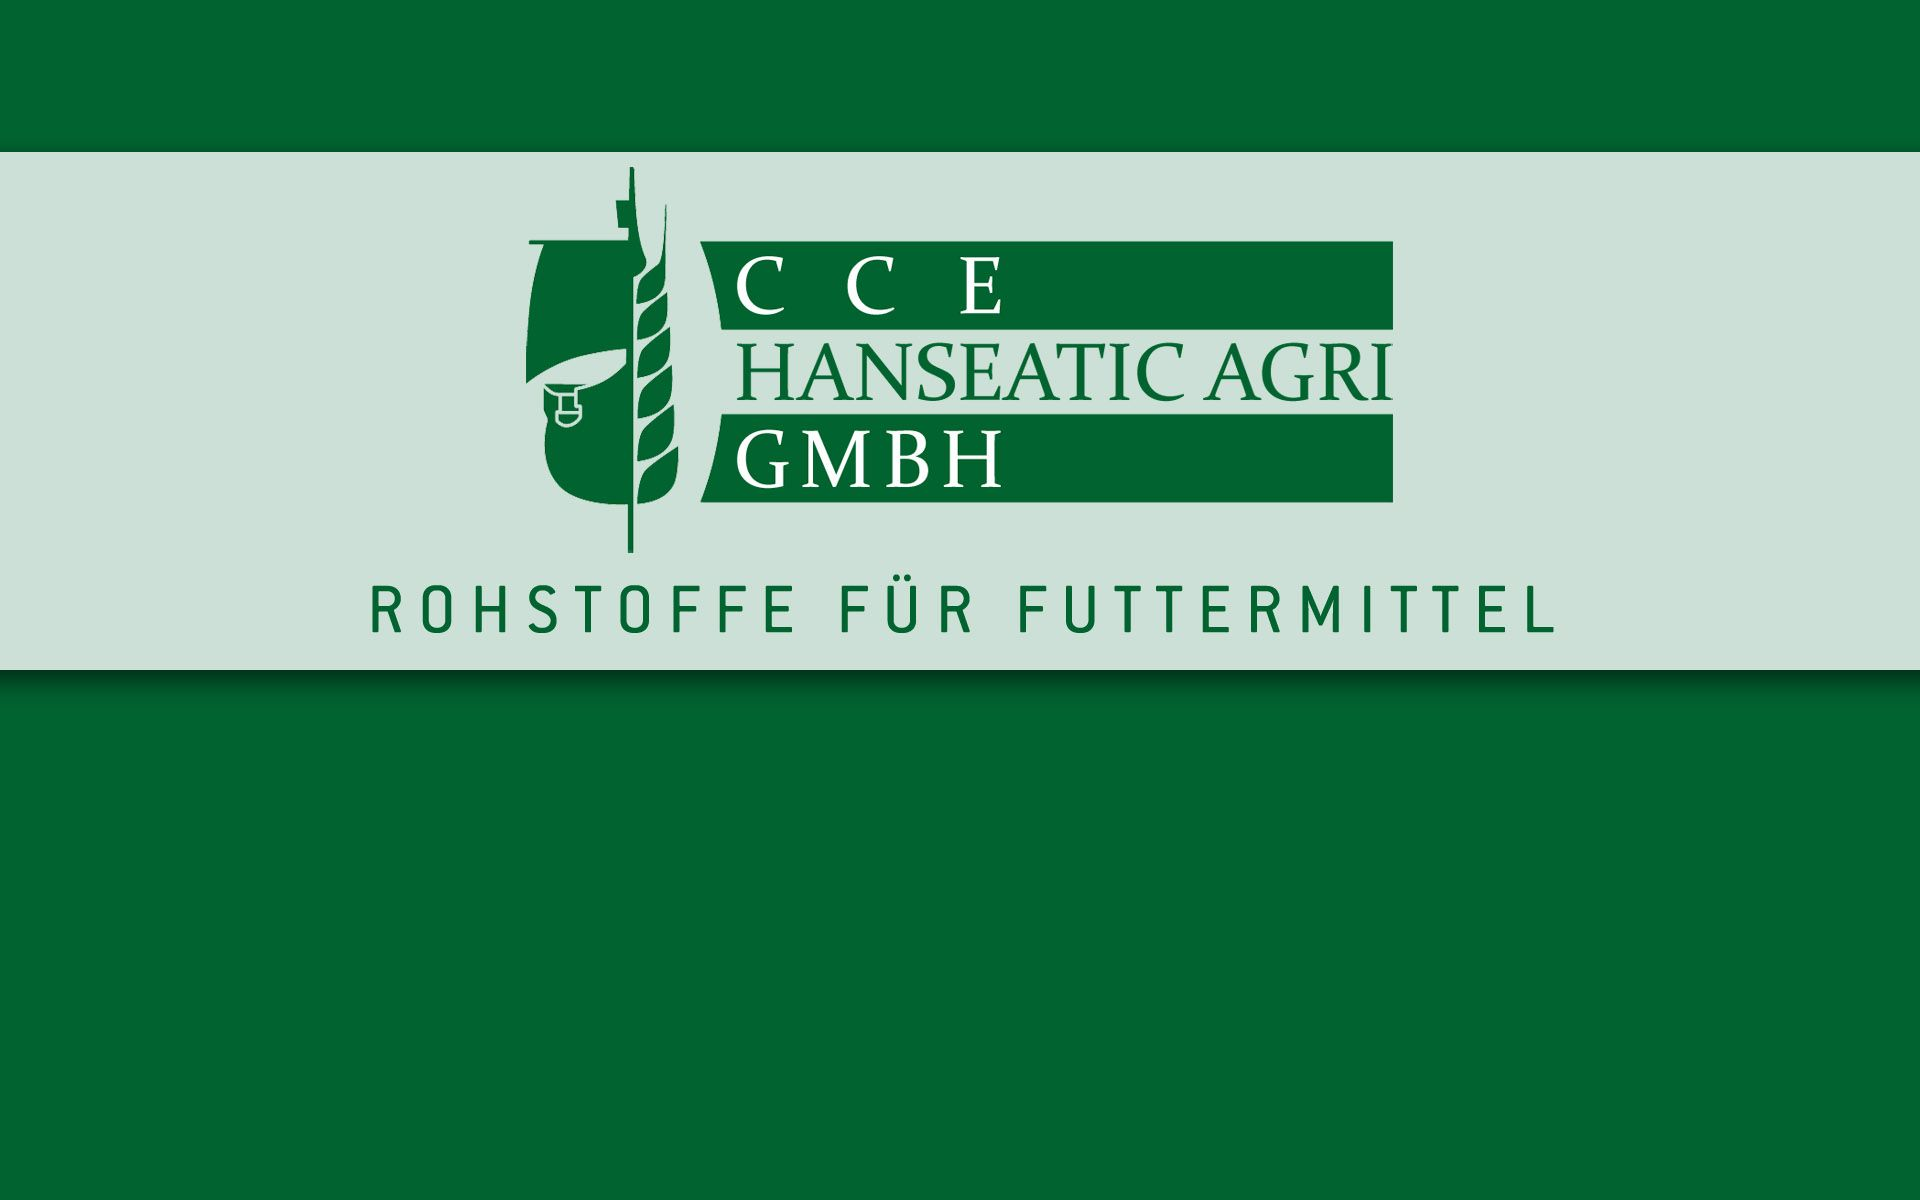 CCE Hanseatic Agri